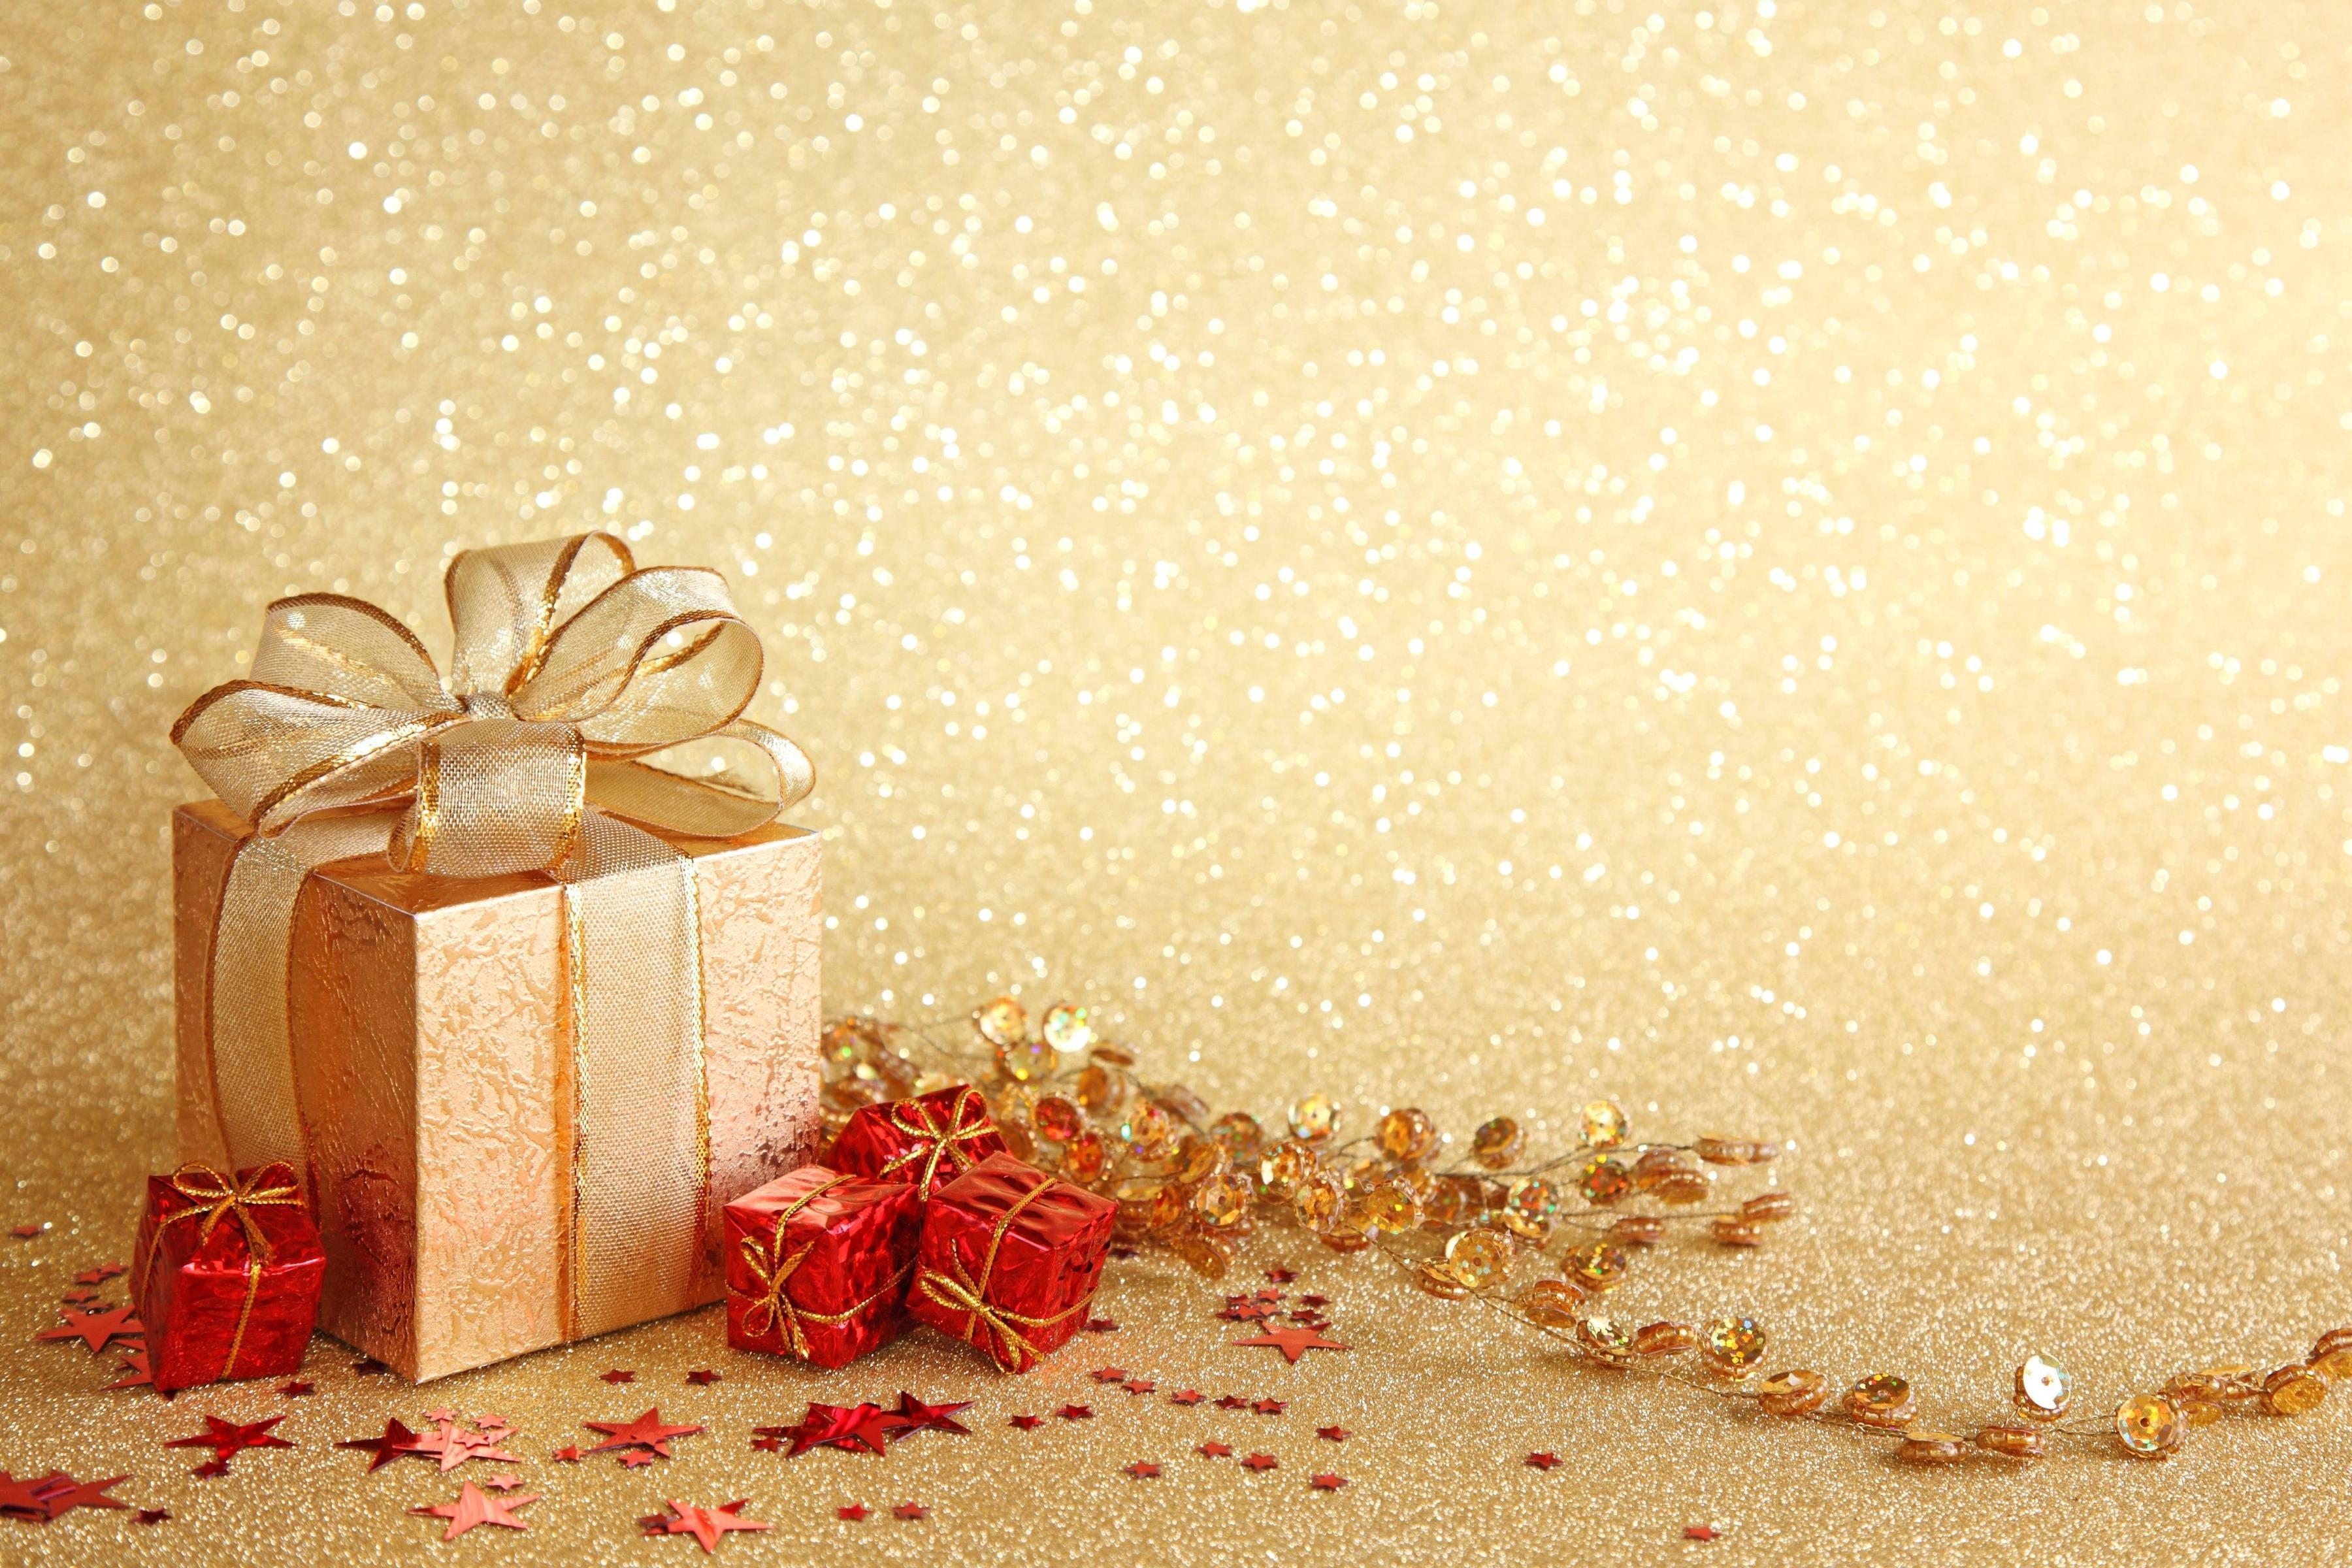 Christmas Gift Backgrounds Wallpaper Cave